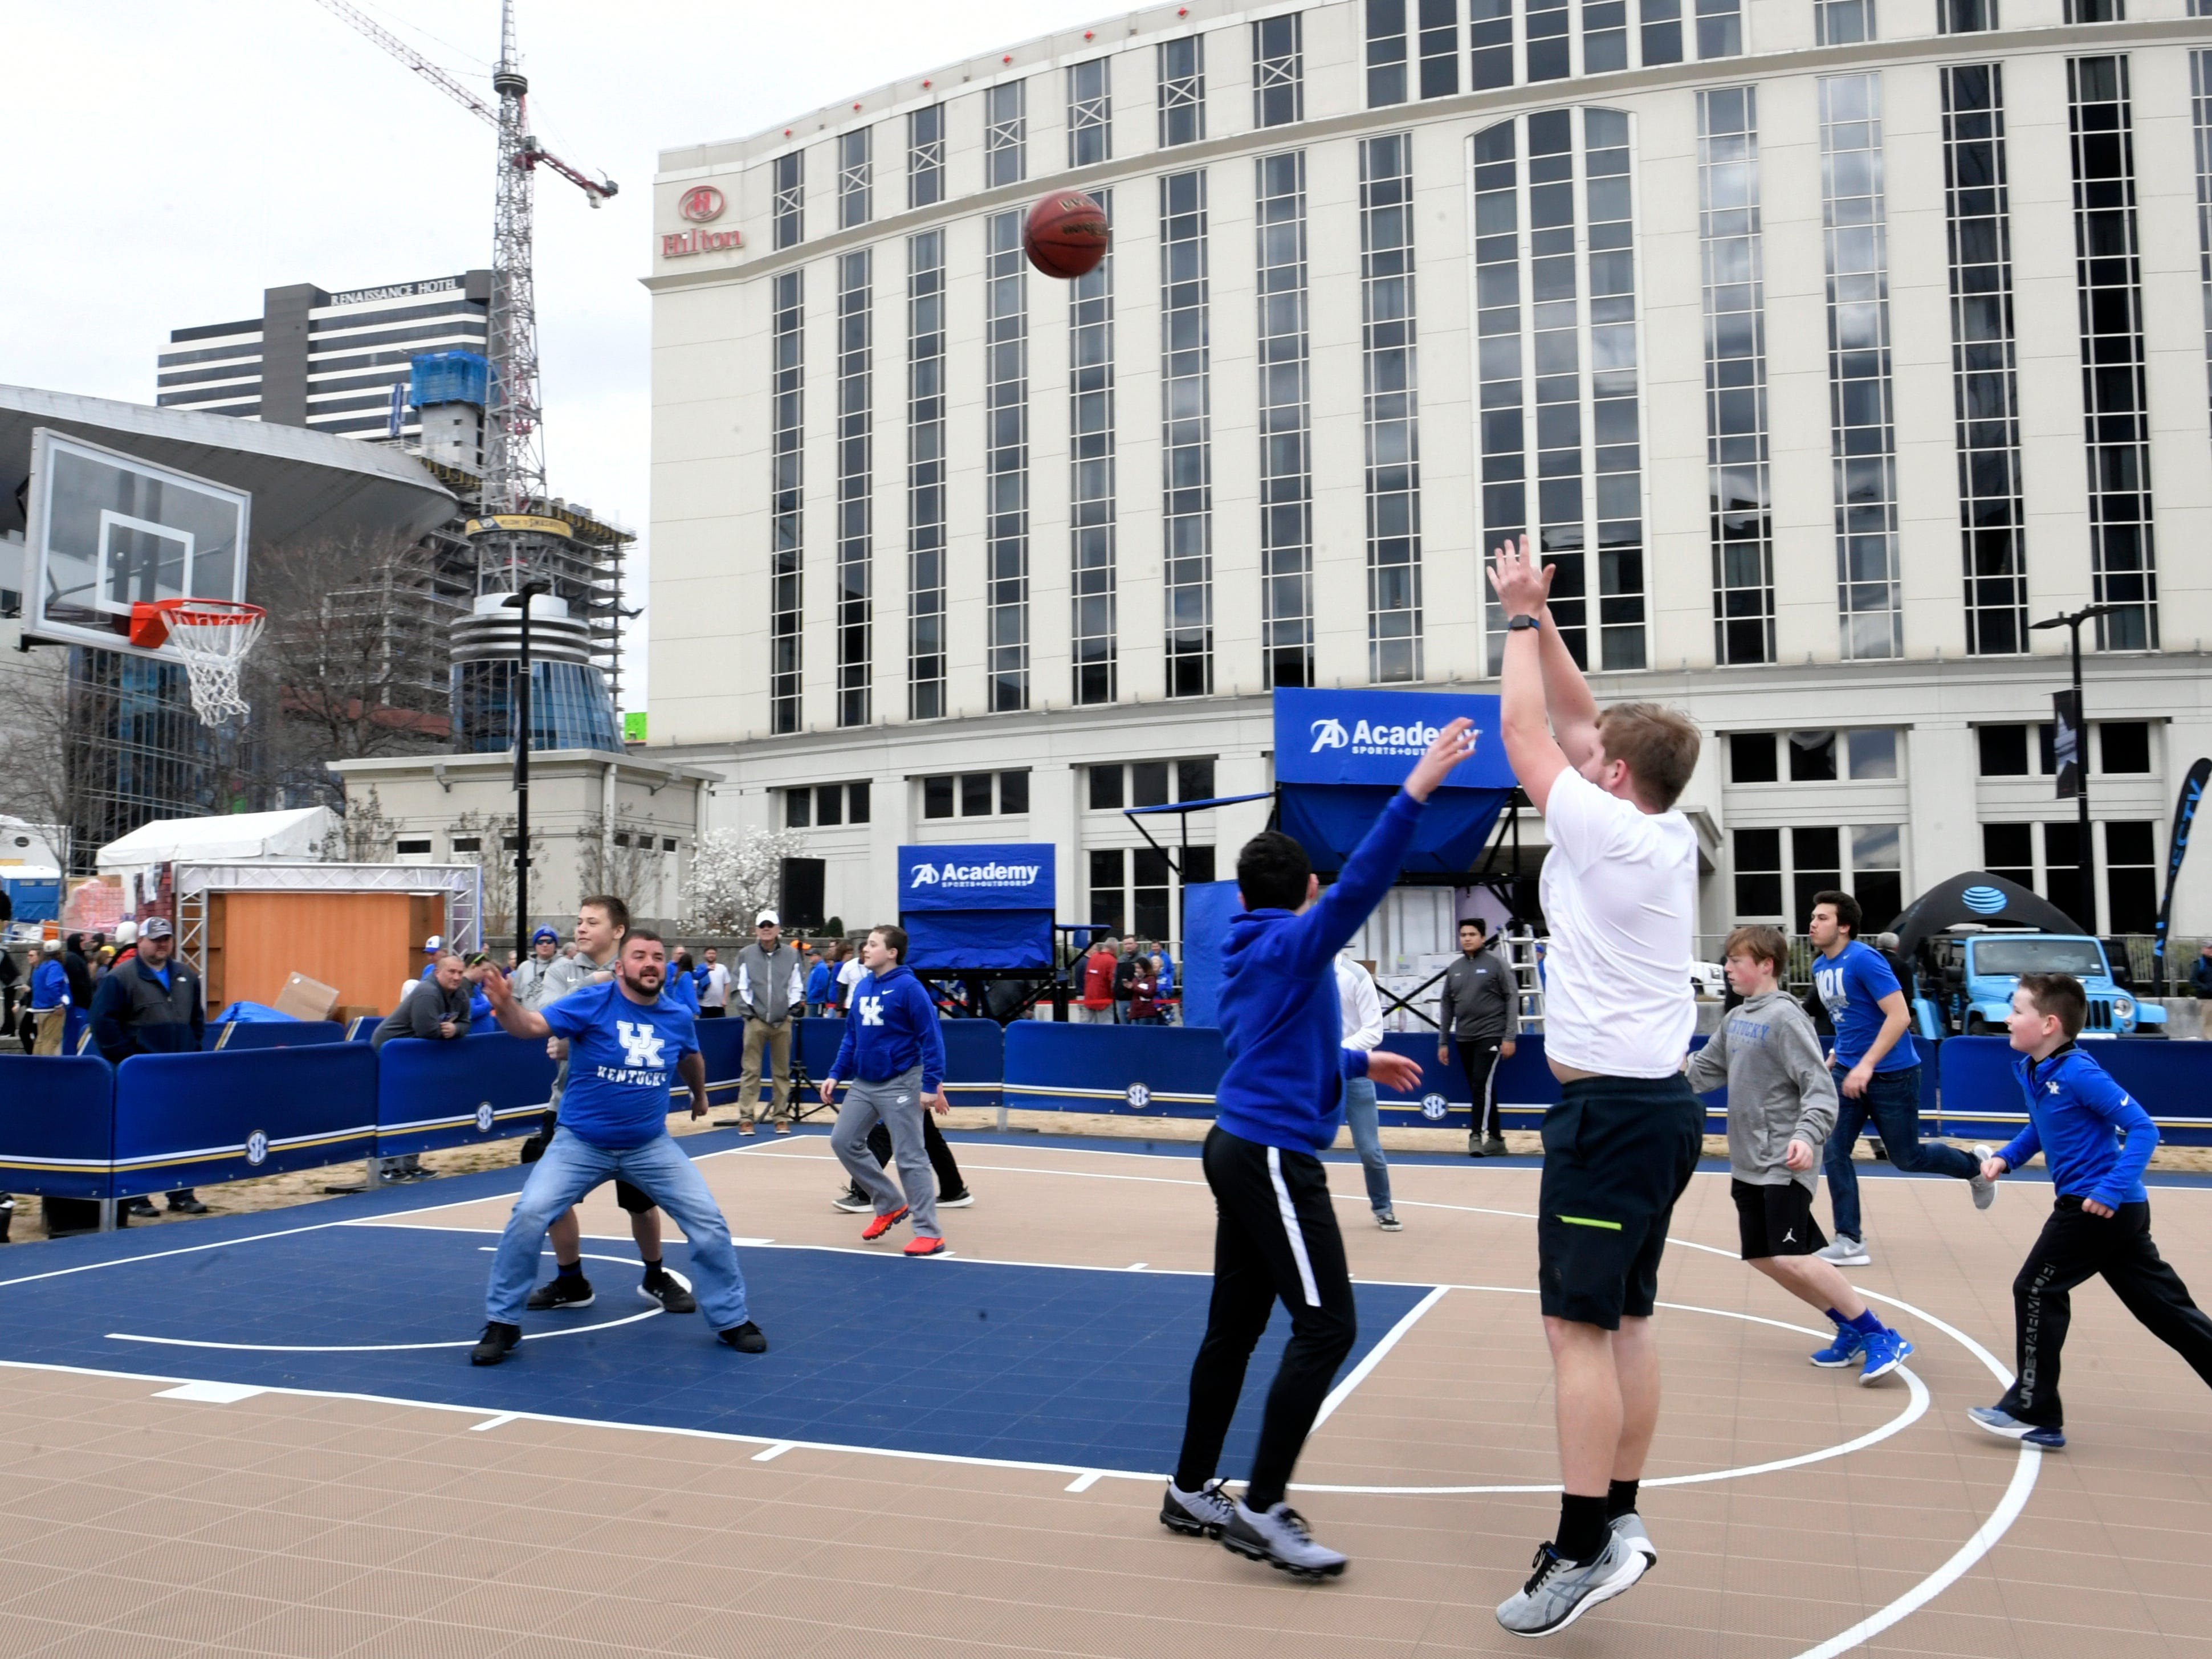 Kentucky fans play a game at the SEC Men's Basketball Tournament's Fanfare at Music City Walk of Fame Park in Nashville on Friday, March 15, 2019.